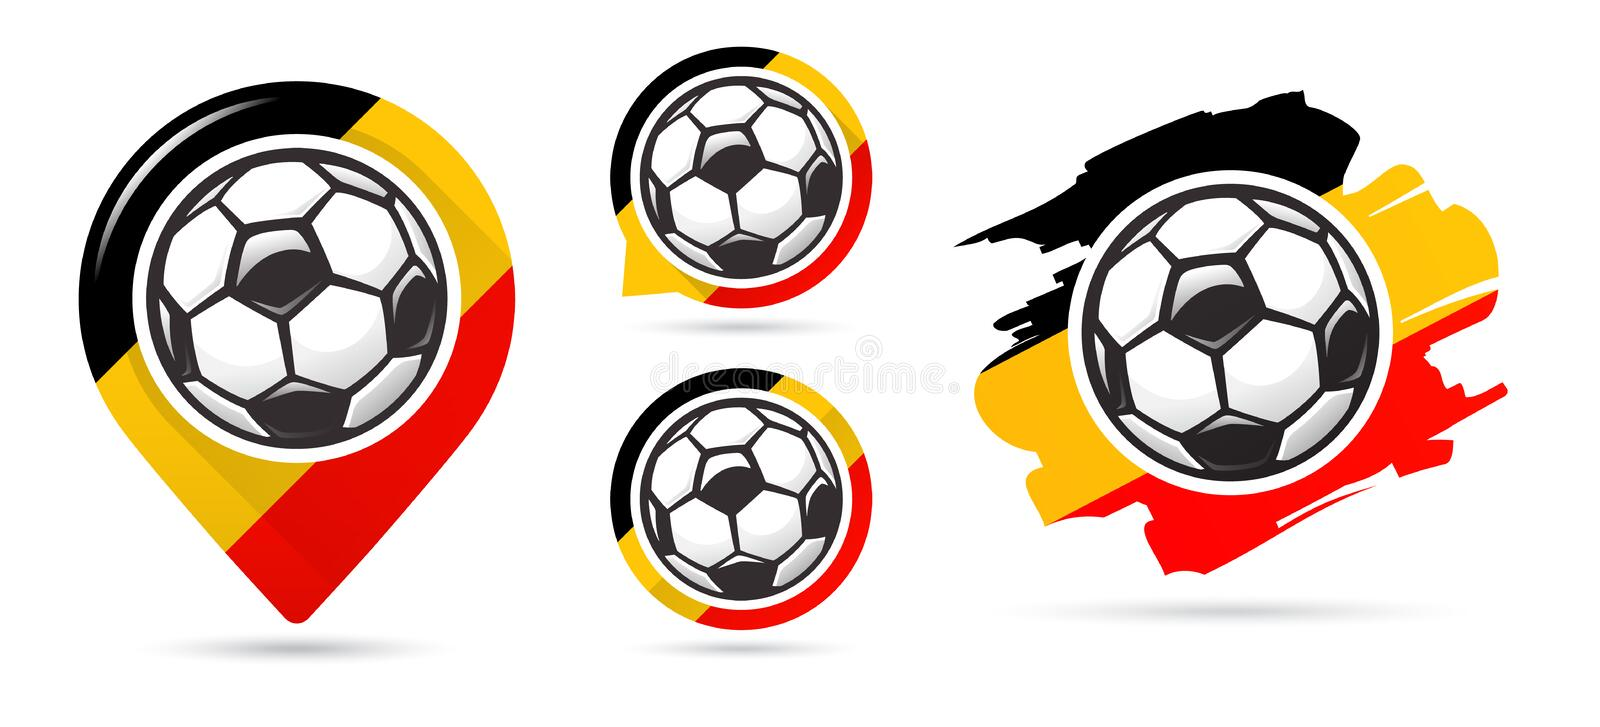 Belgian football vector icons. Soccer goal. Set of football icons. Football map pointer. Football ball. Soccer ball. Belgian football vector icons. Soccer goal stock illustration